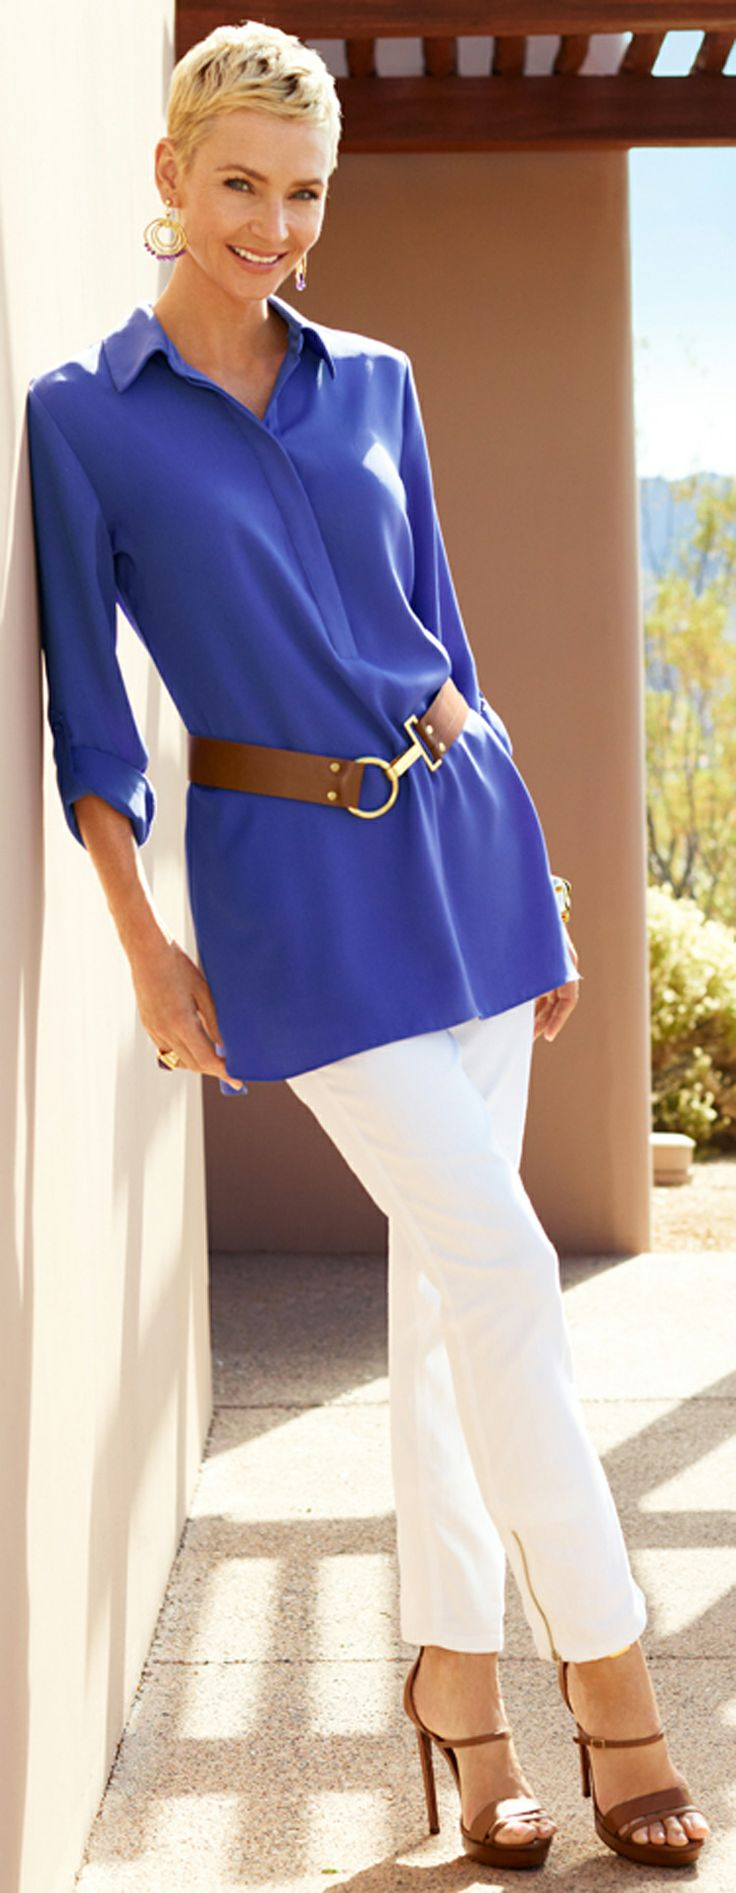 Slimming Secret: Belt a big shirt (relaxed CAN be flattering). #chicos I have all the components!